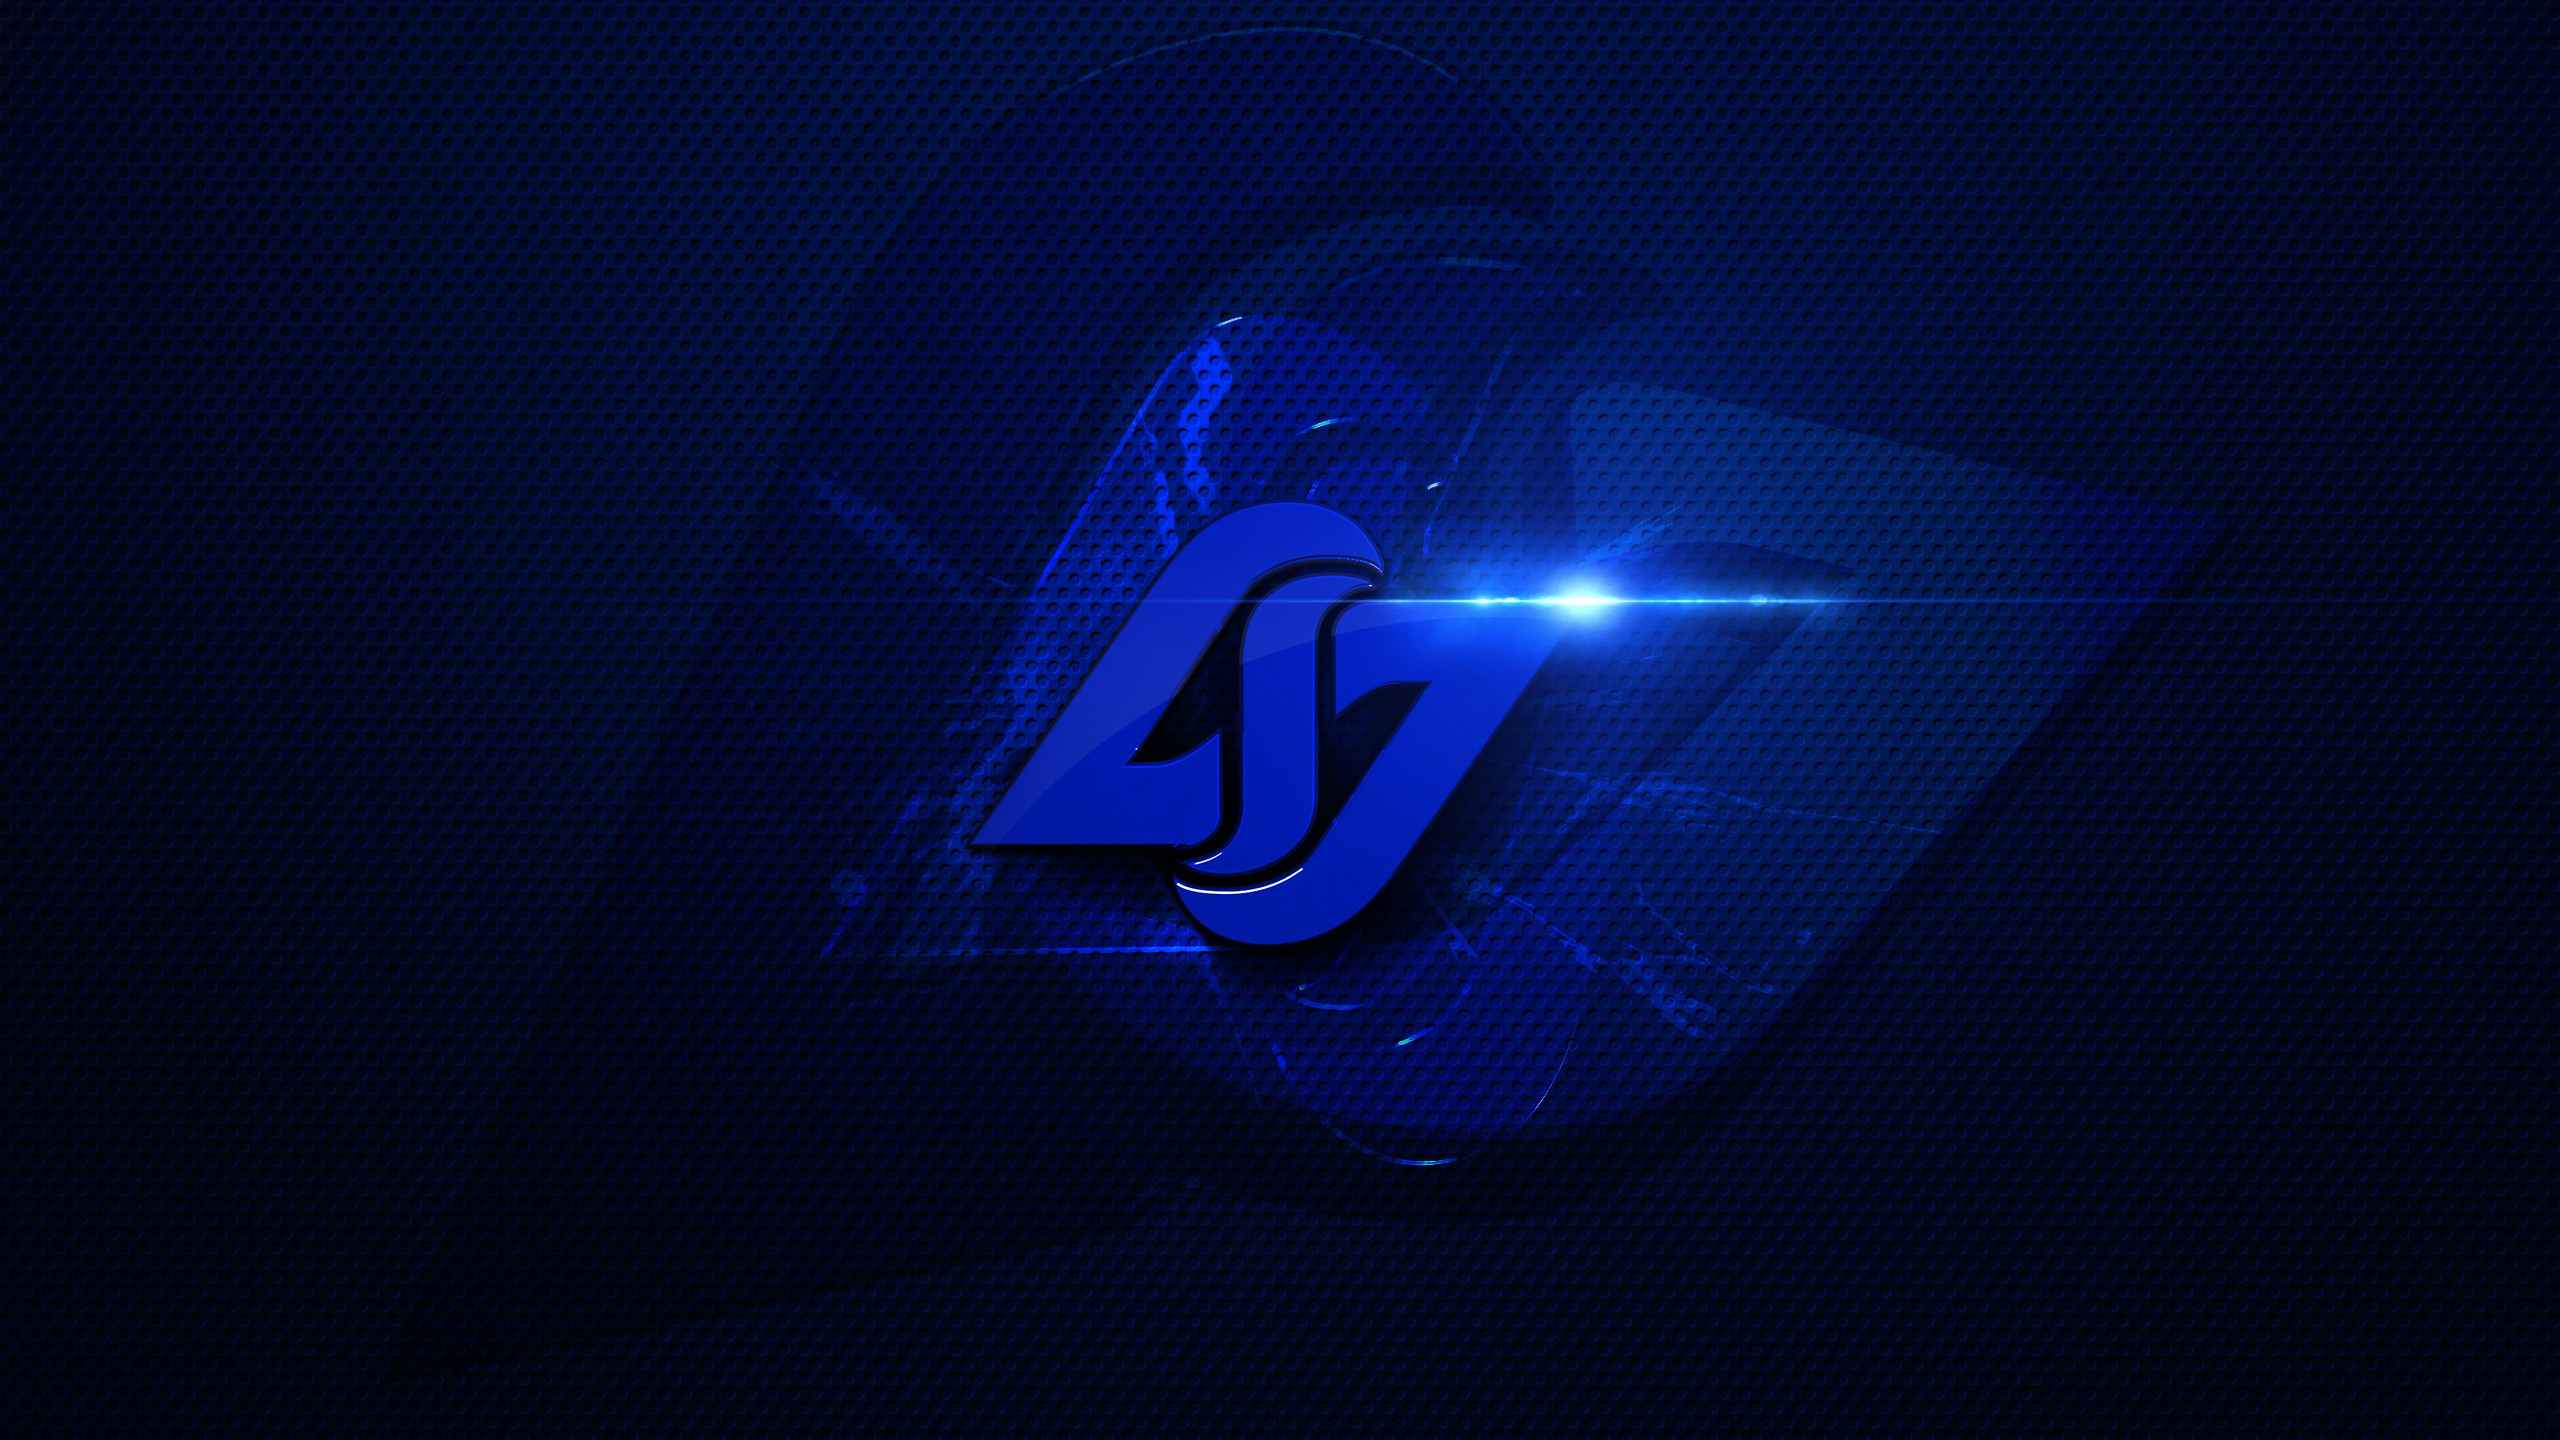 Wallpapers for CLG! :D For more wallpapers and updates:  https://www.facebook.com/Extraqt https://twitter.com/theExtraqt